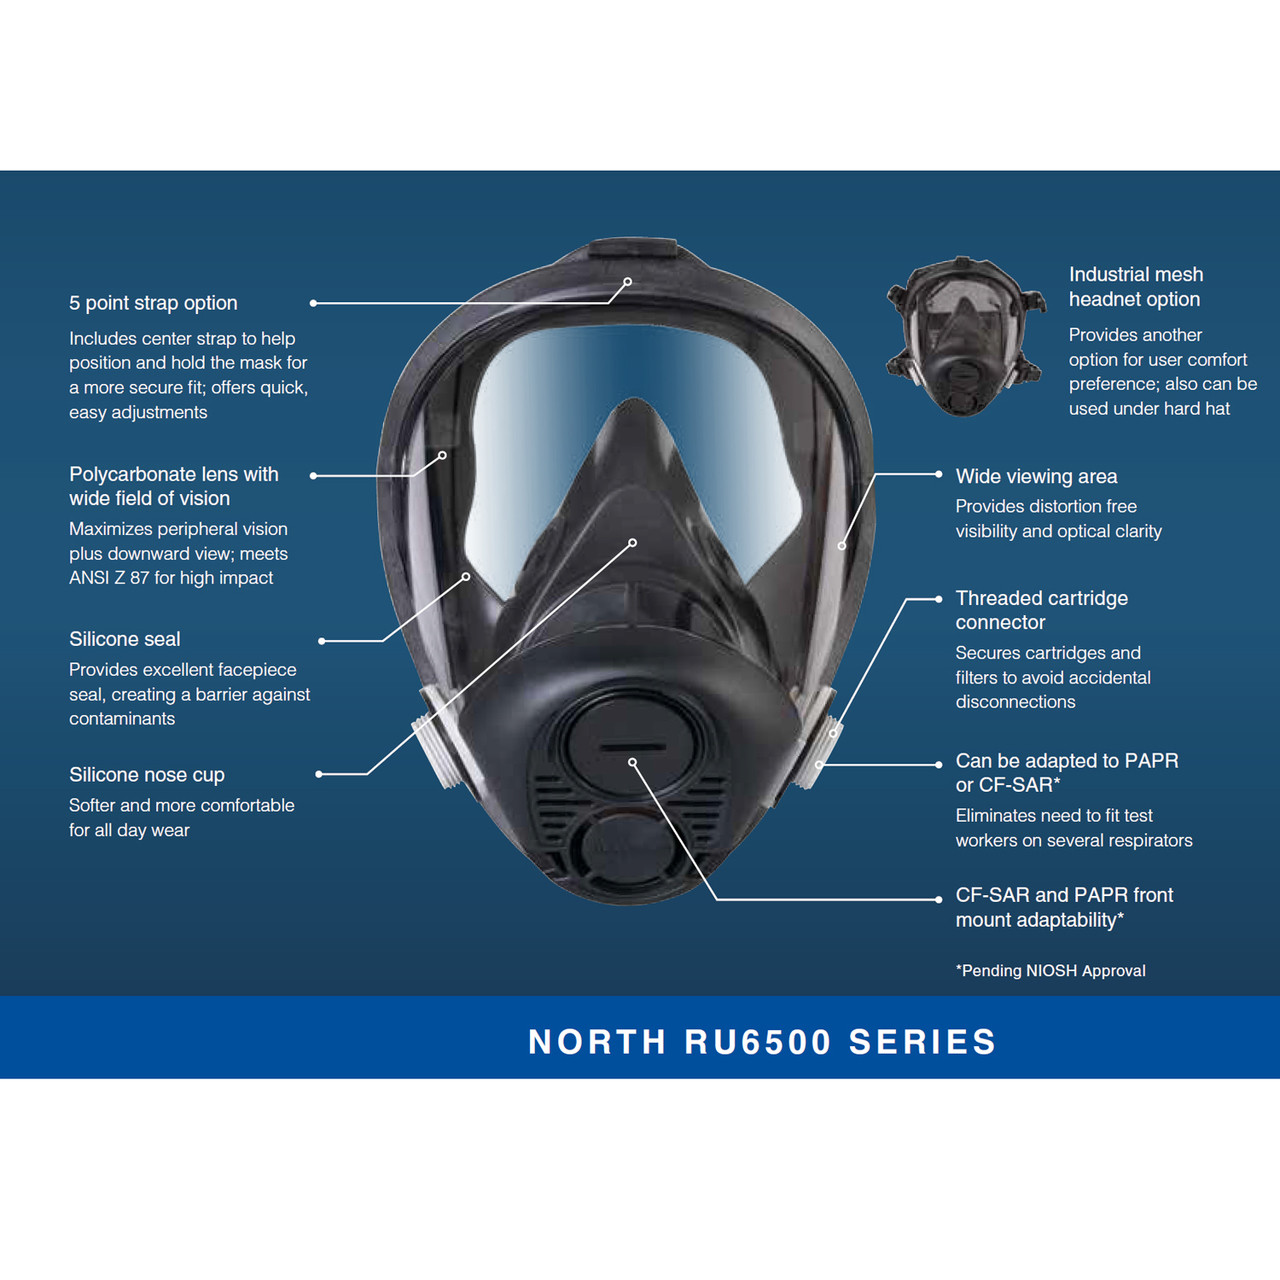 honeywell respirator mask p100